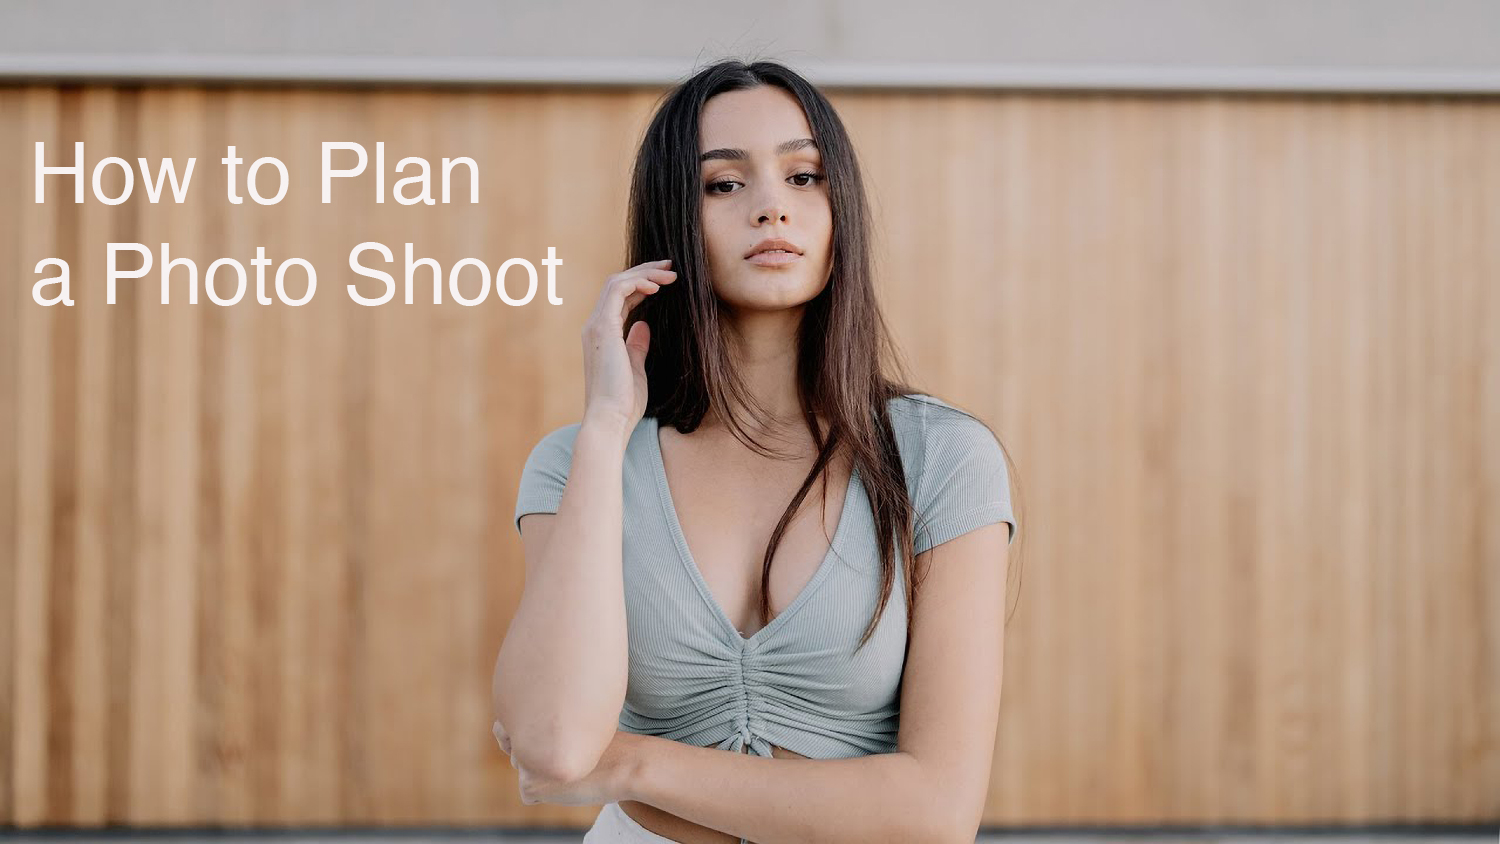 How to Plan a Portrait Photo Shoot: Tips & Tricks